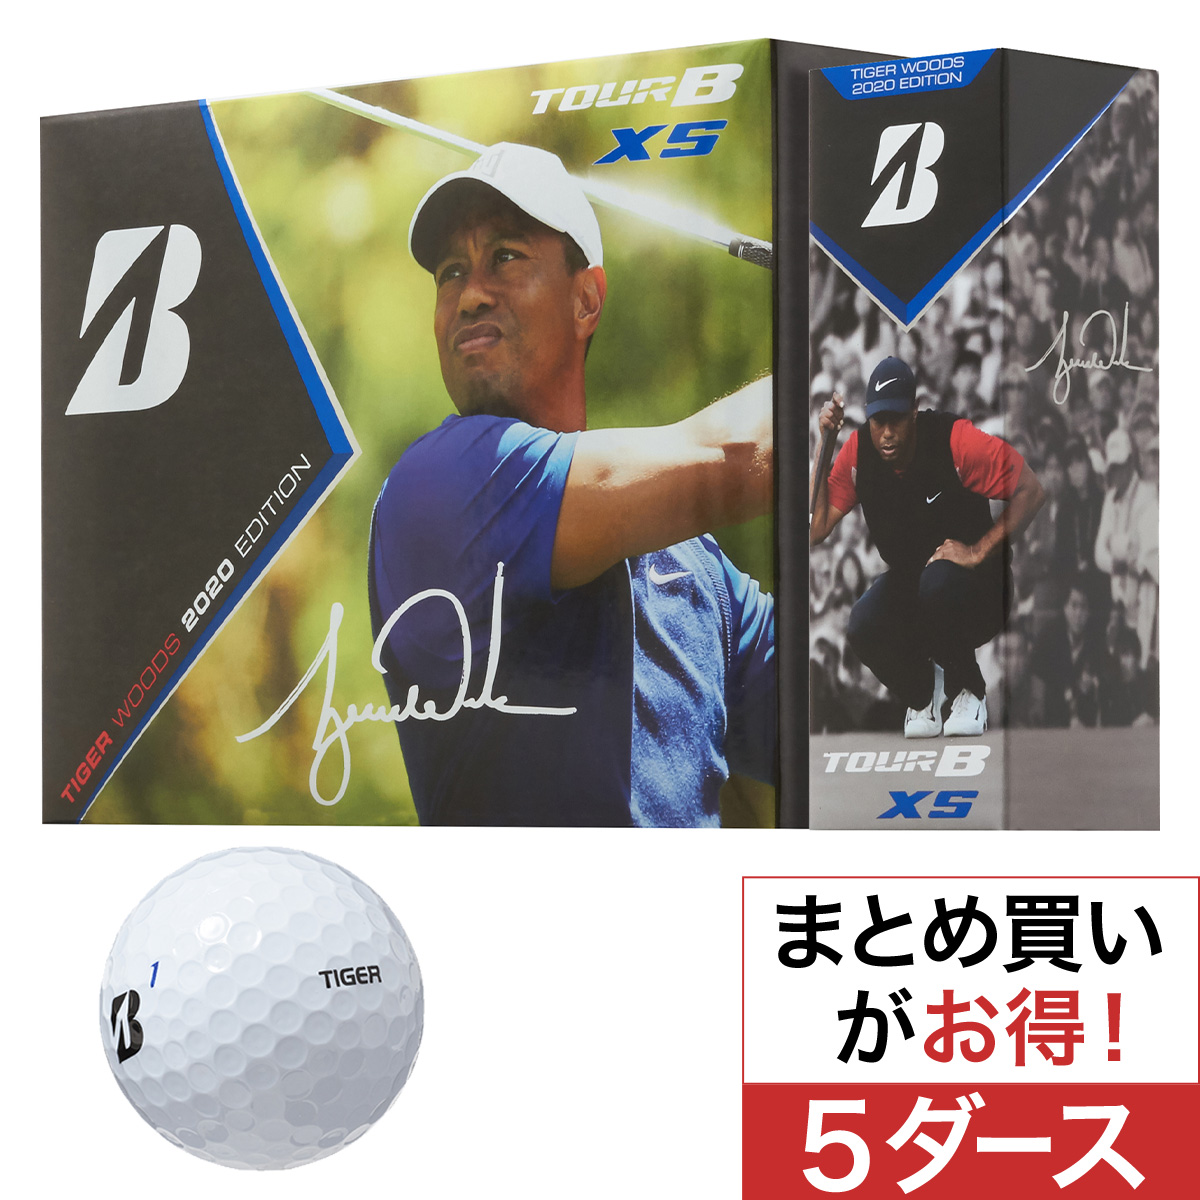 TOUR B XS Tiger Woods 2020 Edition ボール 5ダースセット